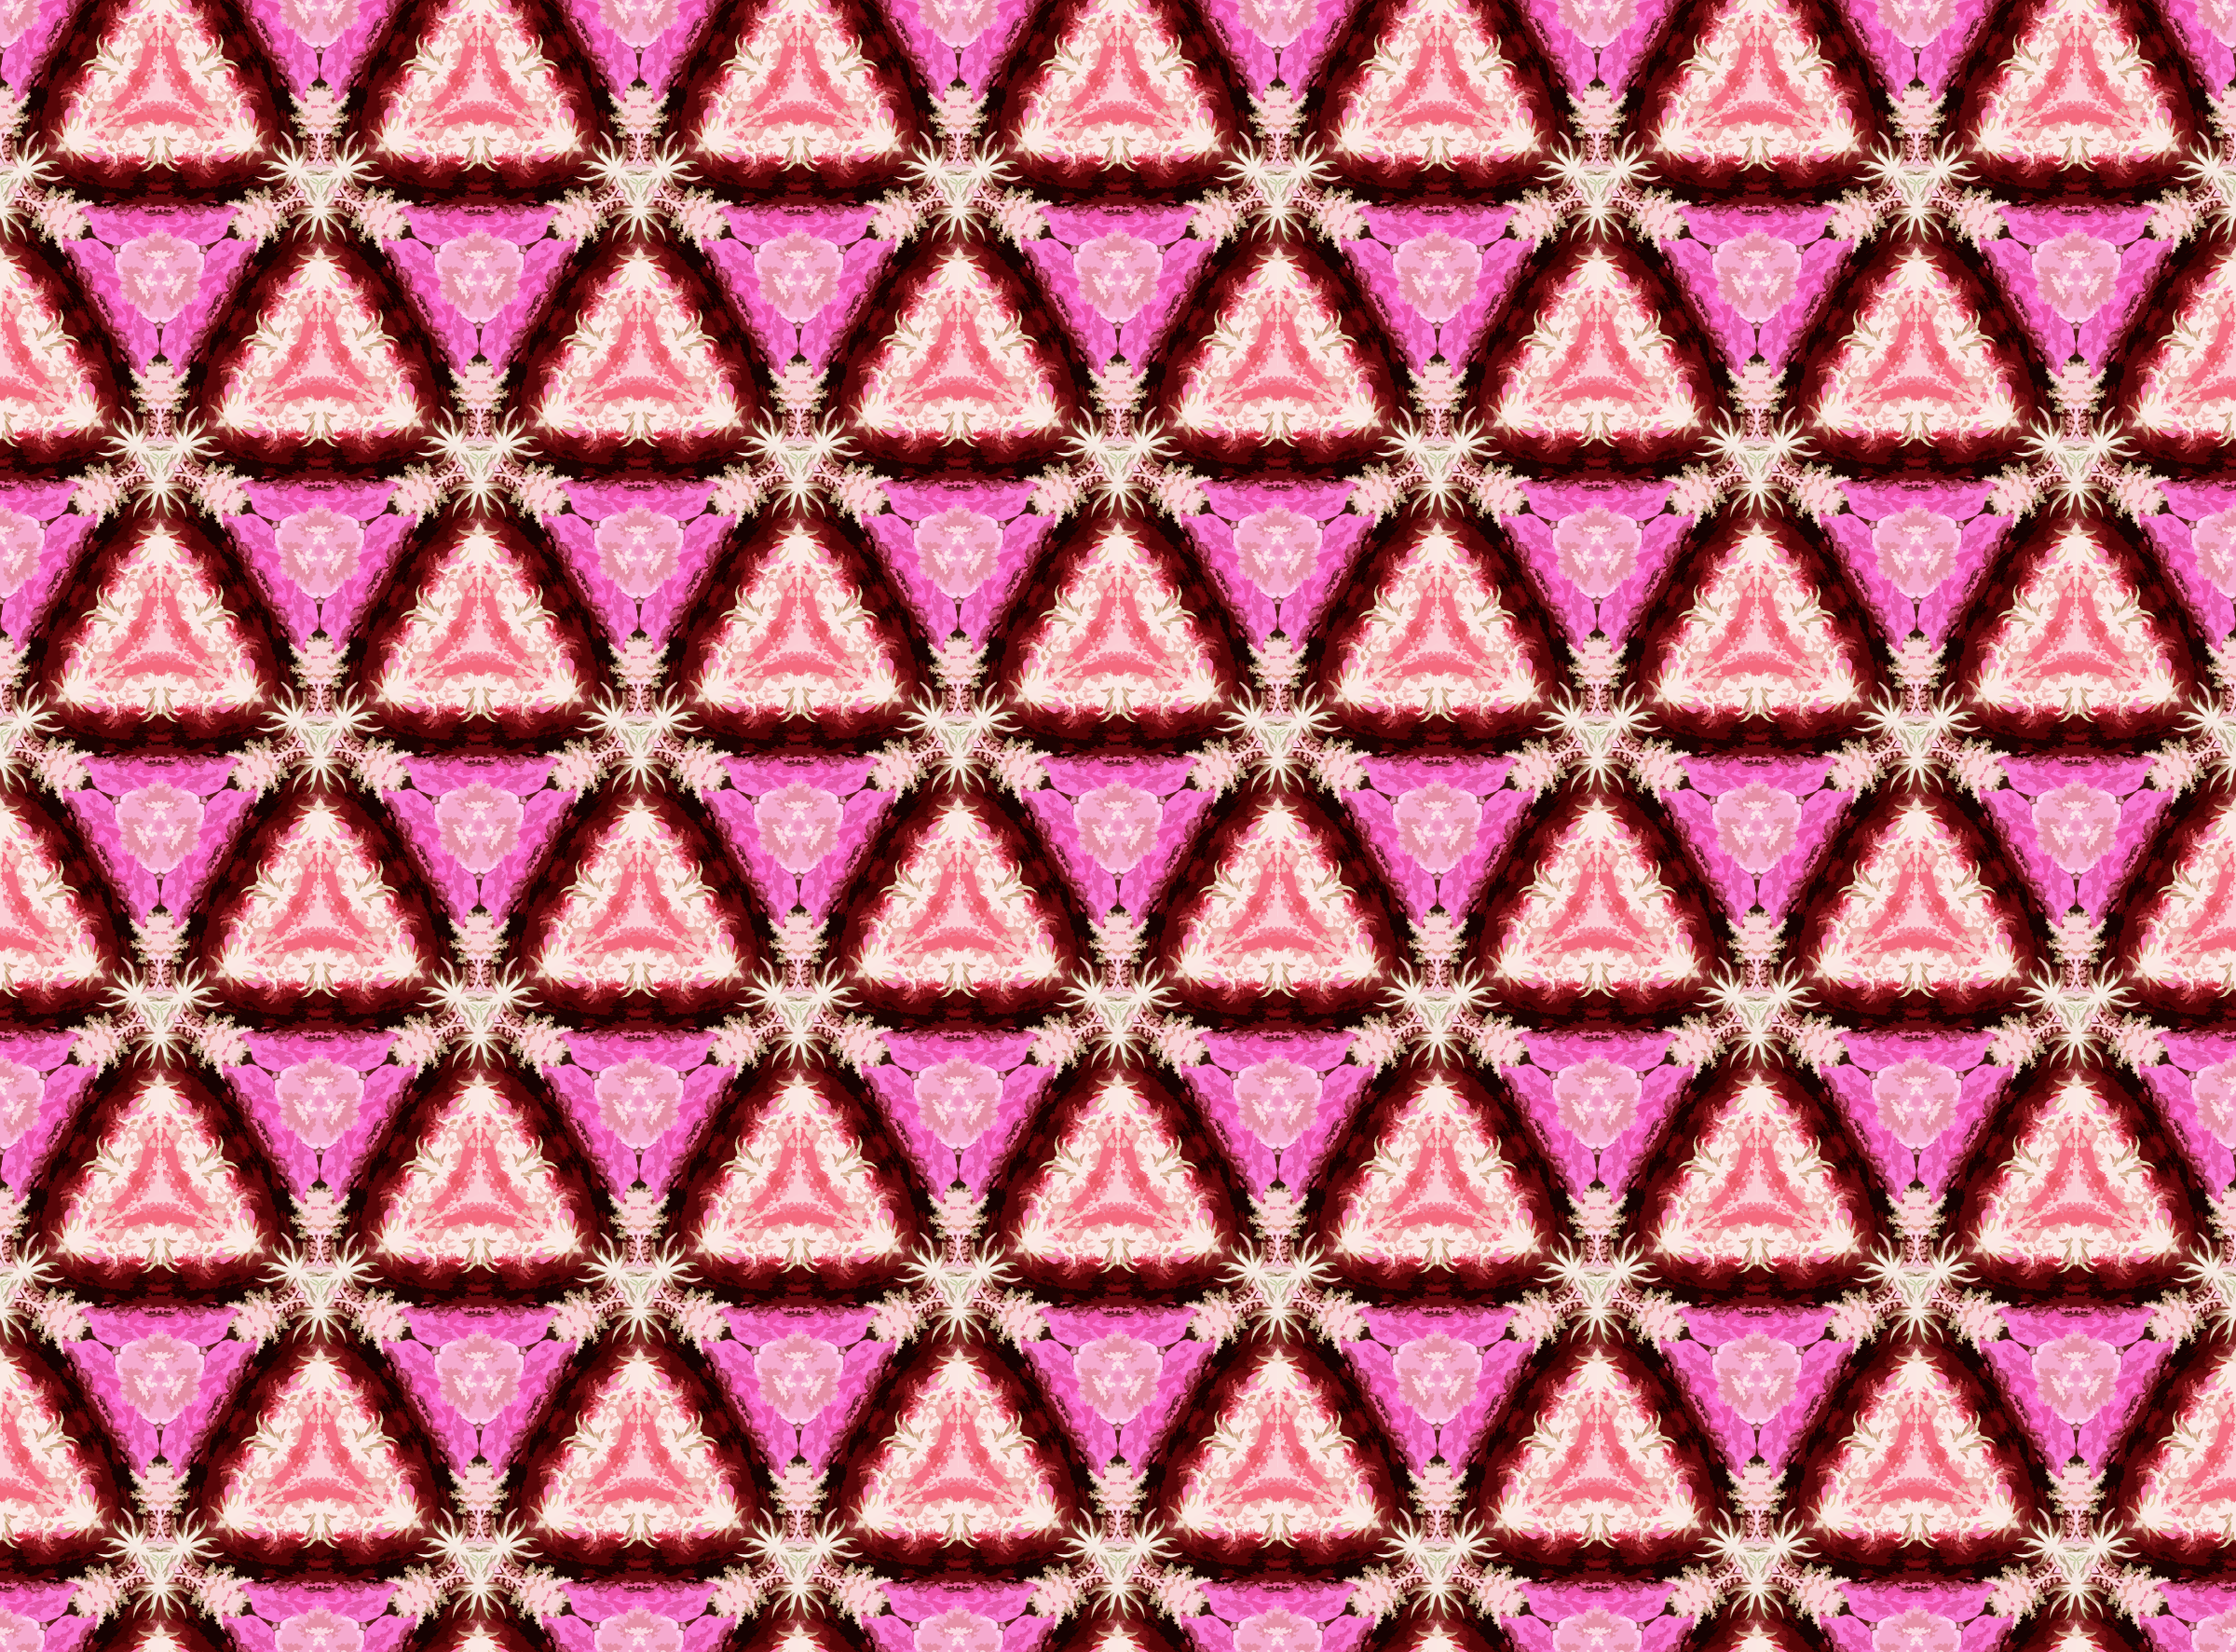 Background pattern 134 (colour 3) by Firkin